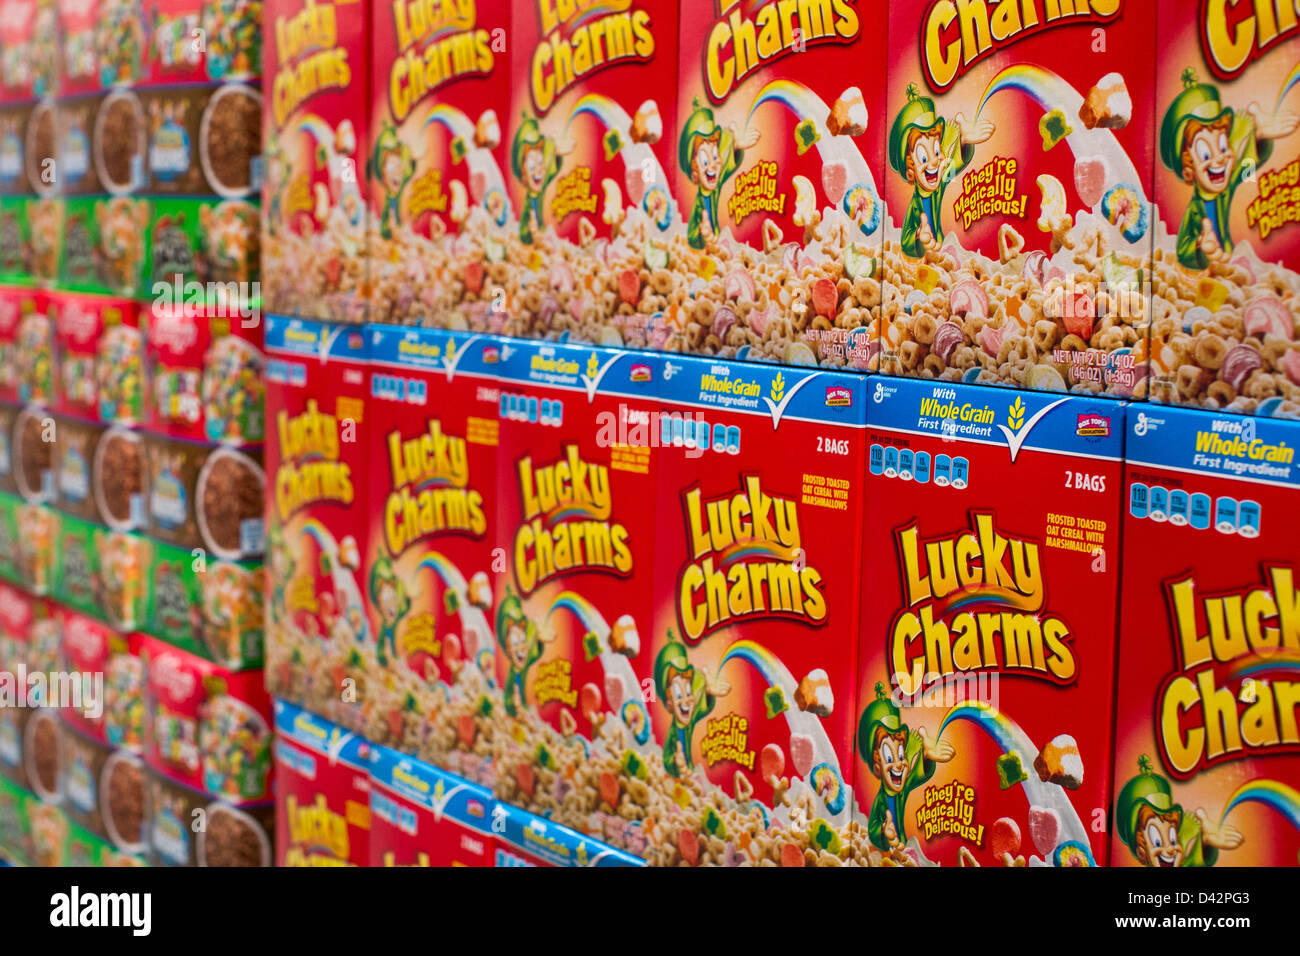 General Mills Lucky Charms cereal on display at a Costco Wholesale Warehouse Club. - Stock Image